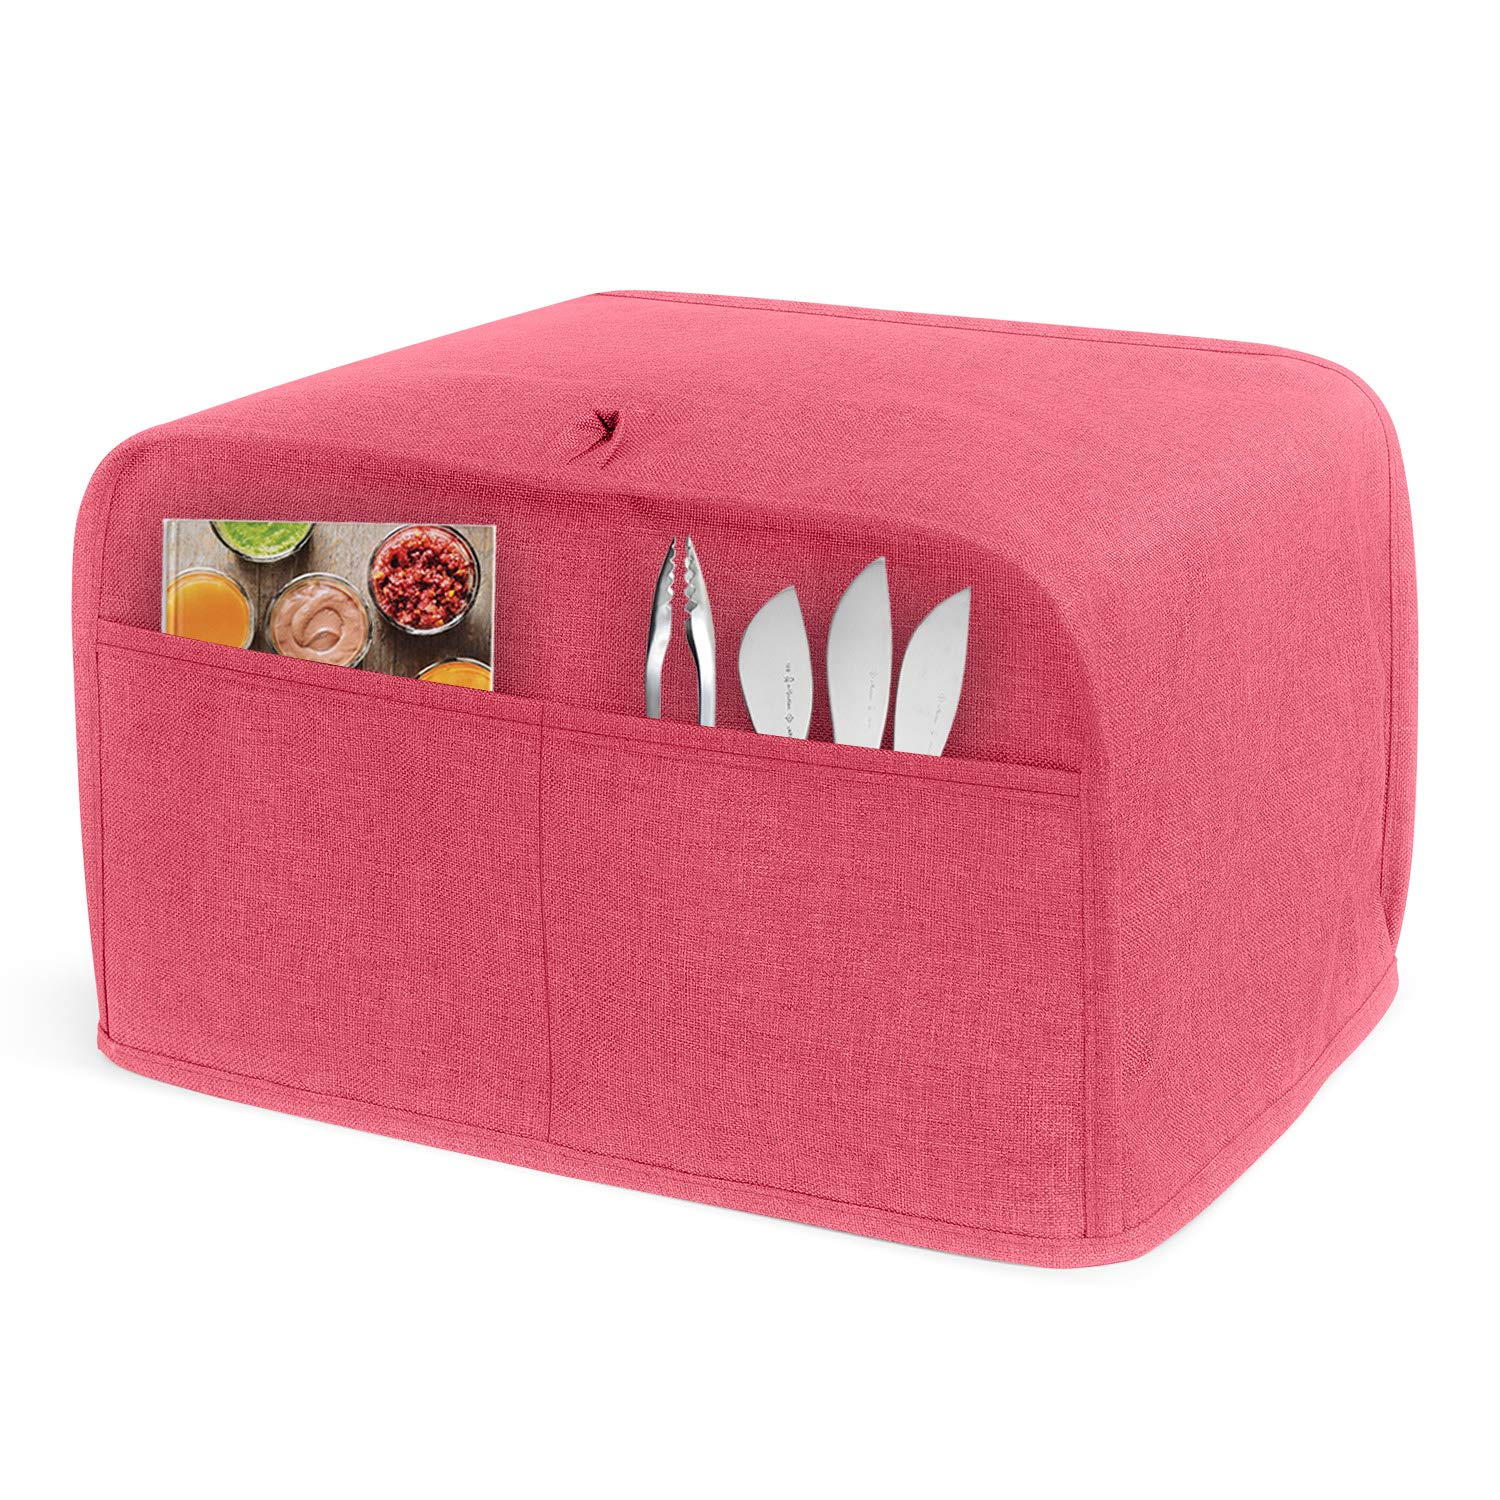 LUXJA 4 Slice Toaster Cover (12.5 x 10 x 8 inches), Toaster Cover with 2 Pockets (Fits for Most Major 4 Slice Toasters), Red